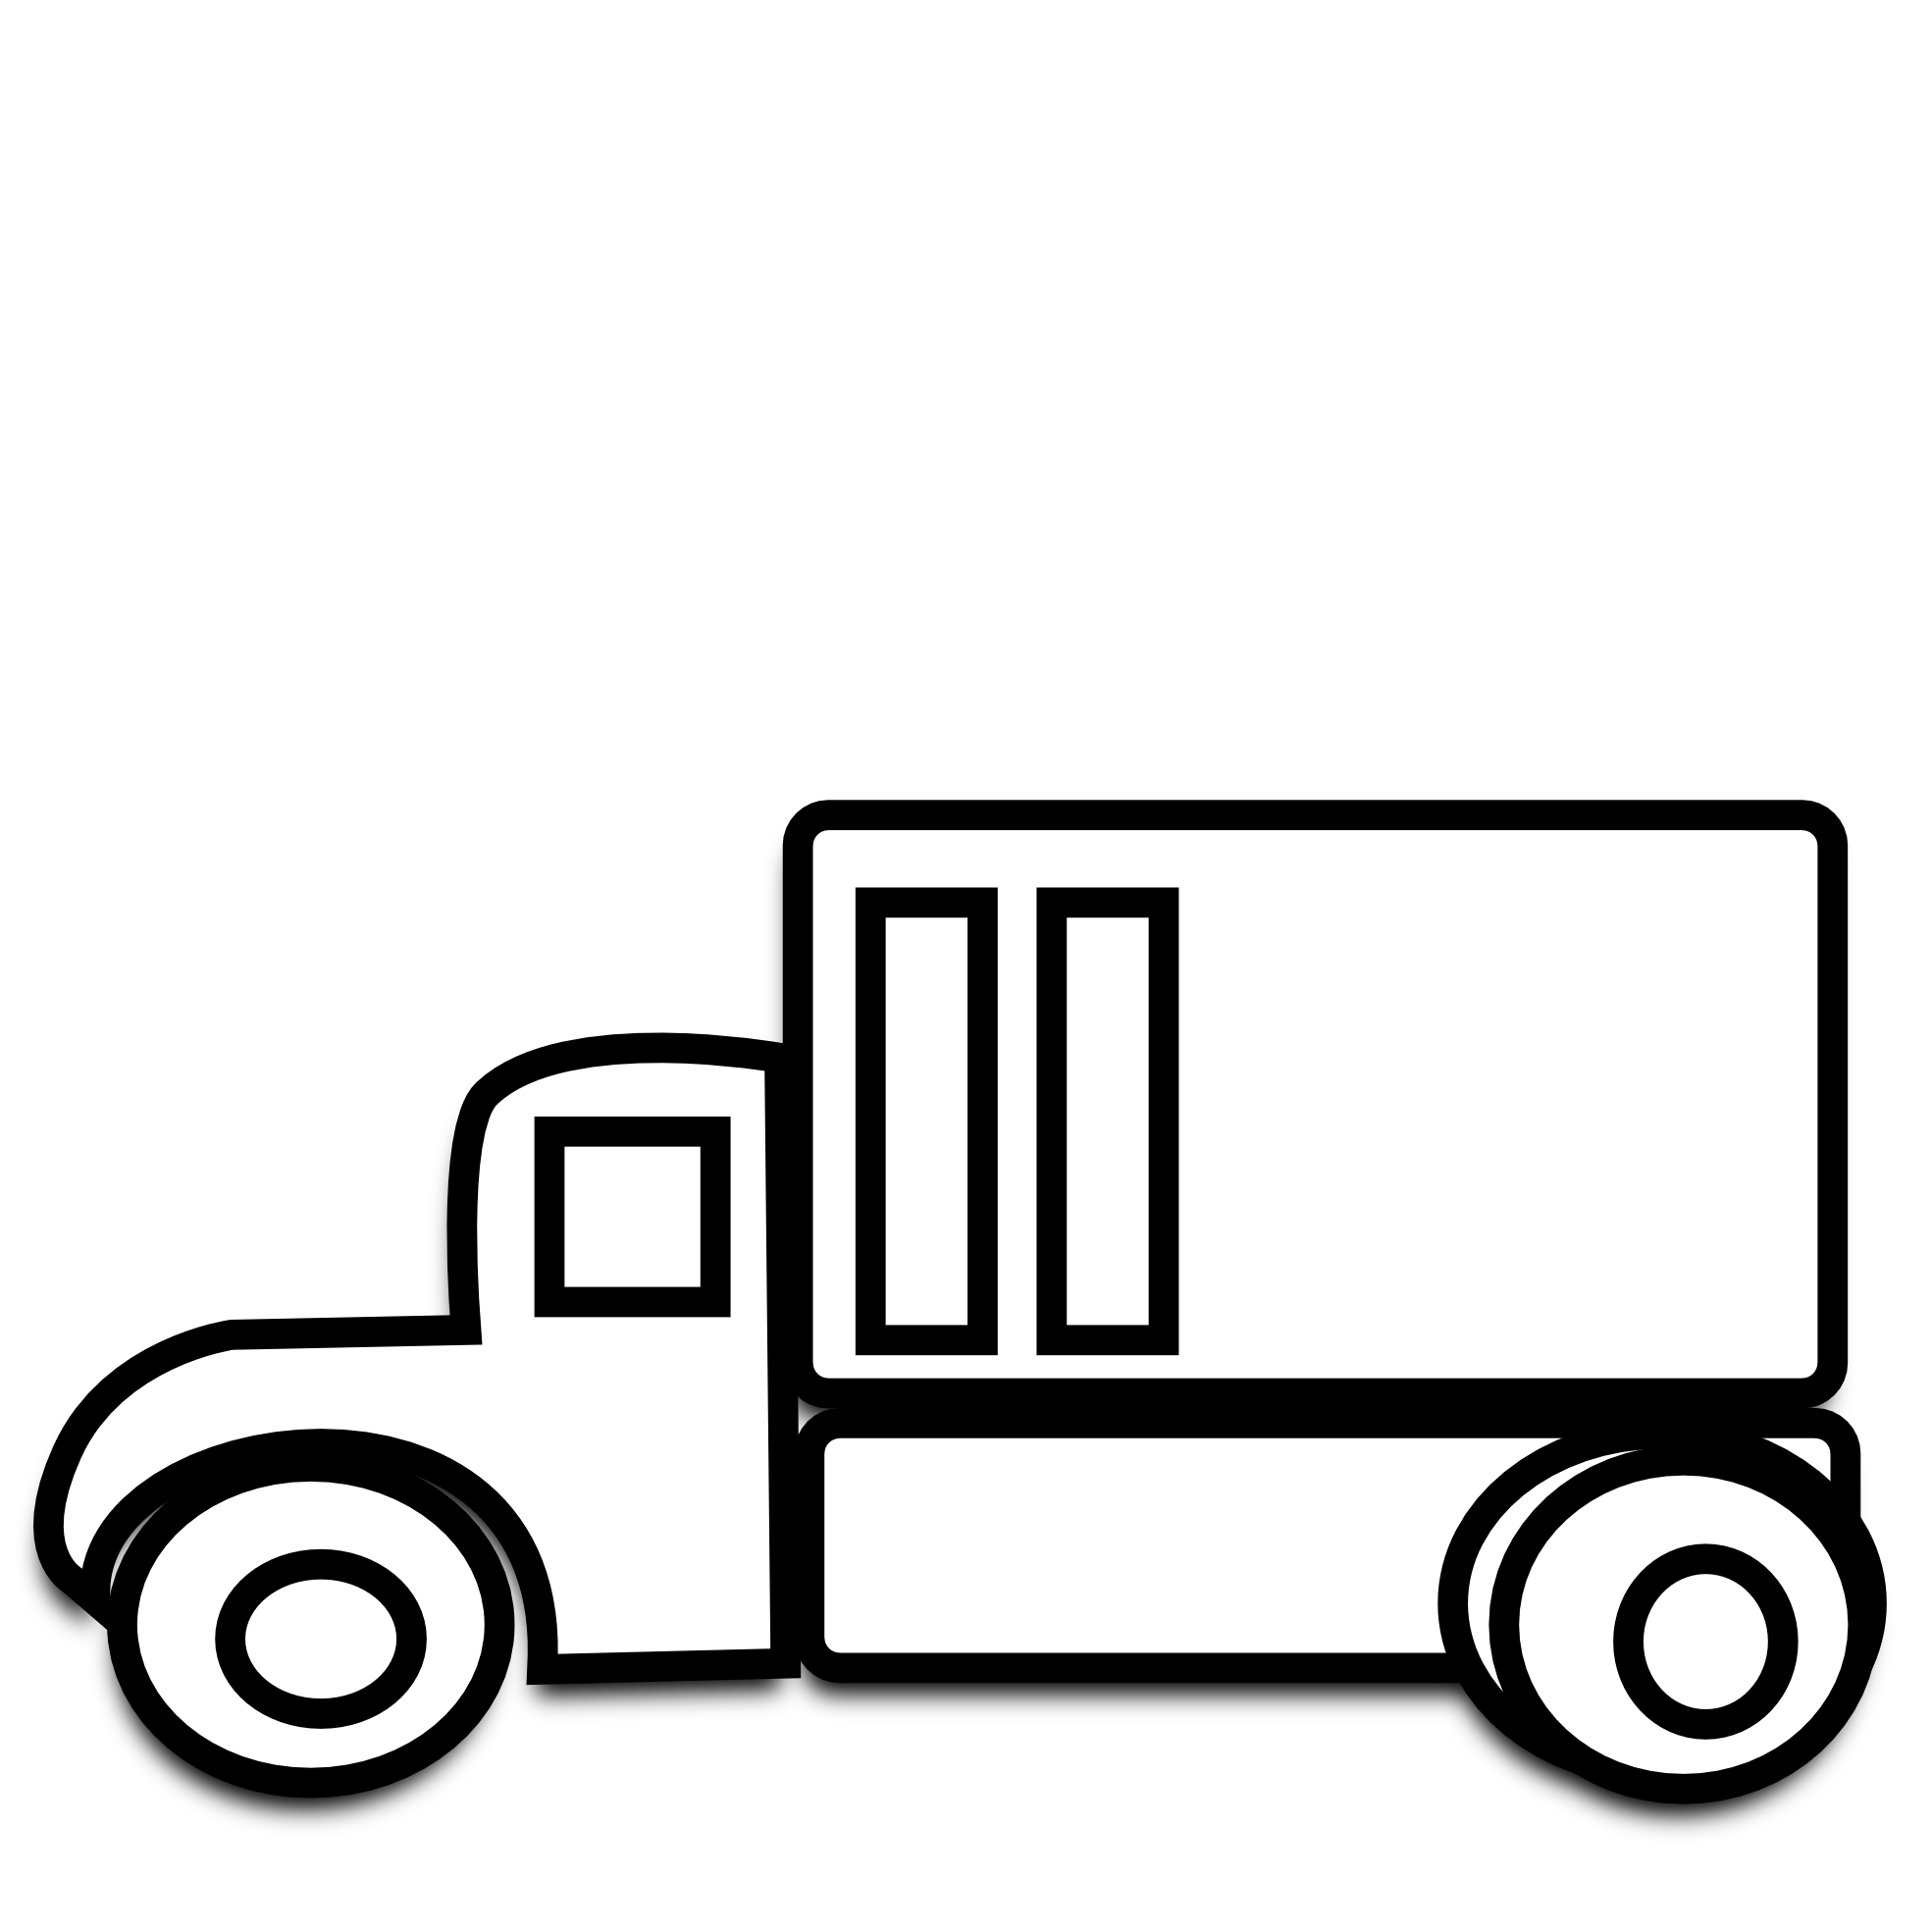 Update your calendarr clipart black and white clipart royalty free Truck Clipart Black And White | Clipart Panda - Free Clipart Images clipart royalty free